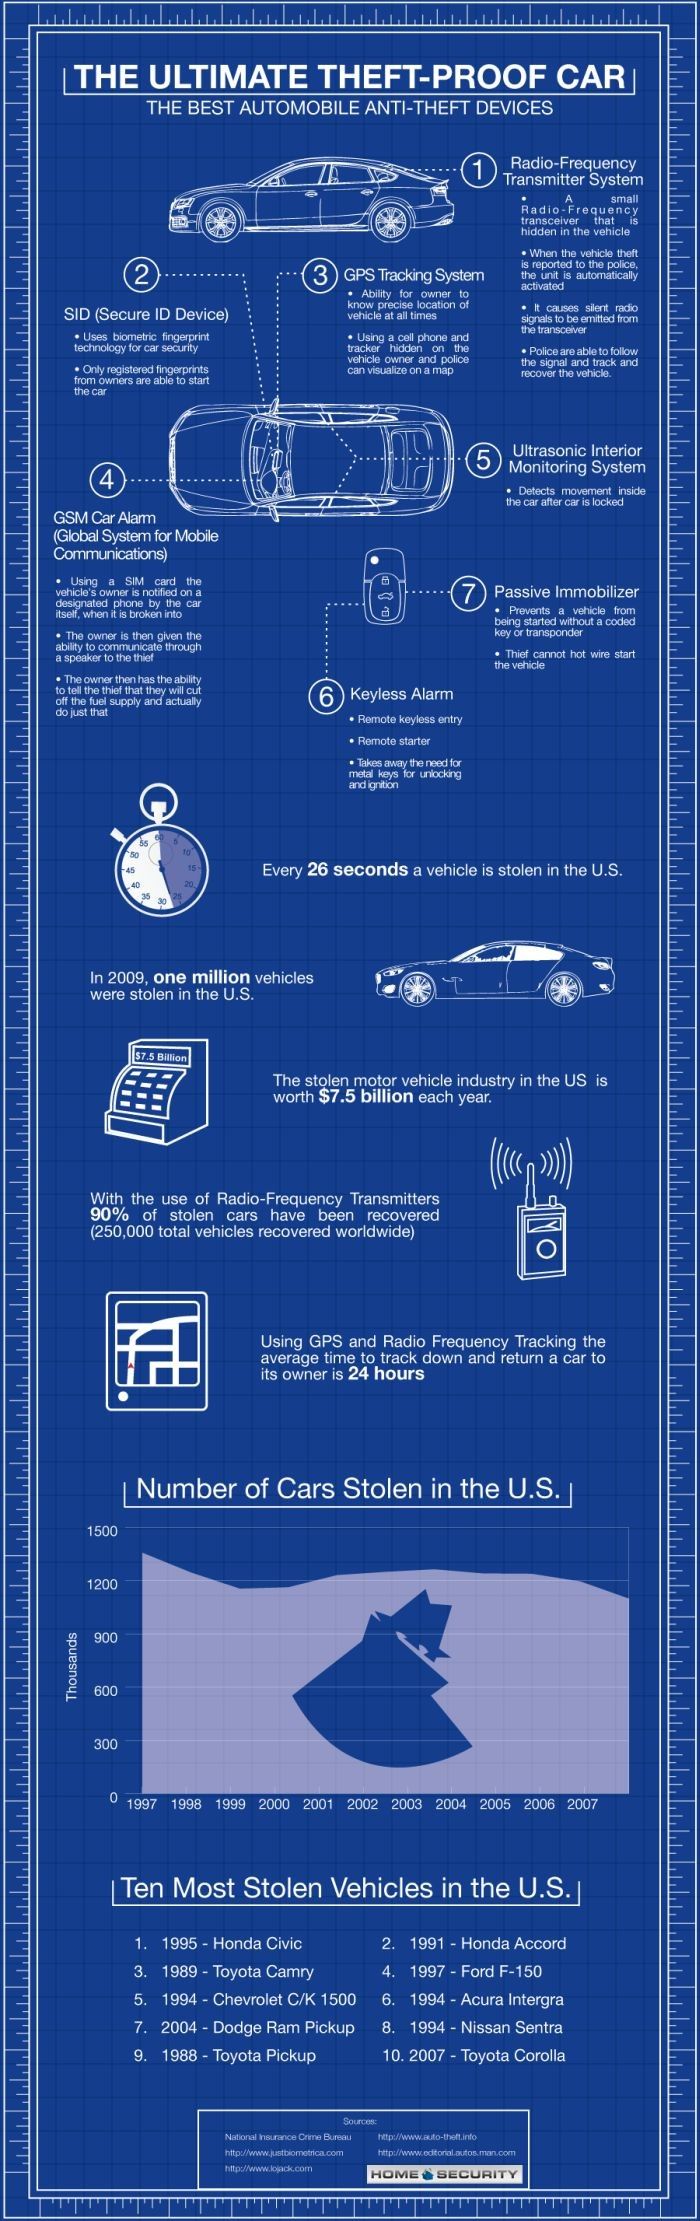 How to Secure a Car from Theft vehicle,security,theft,statistics,recovery,infographic